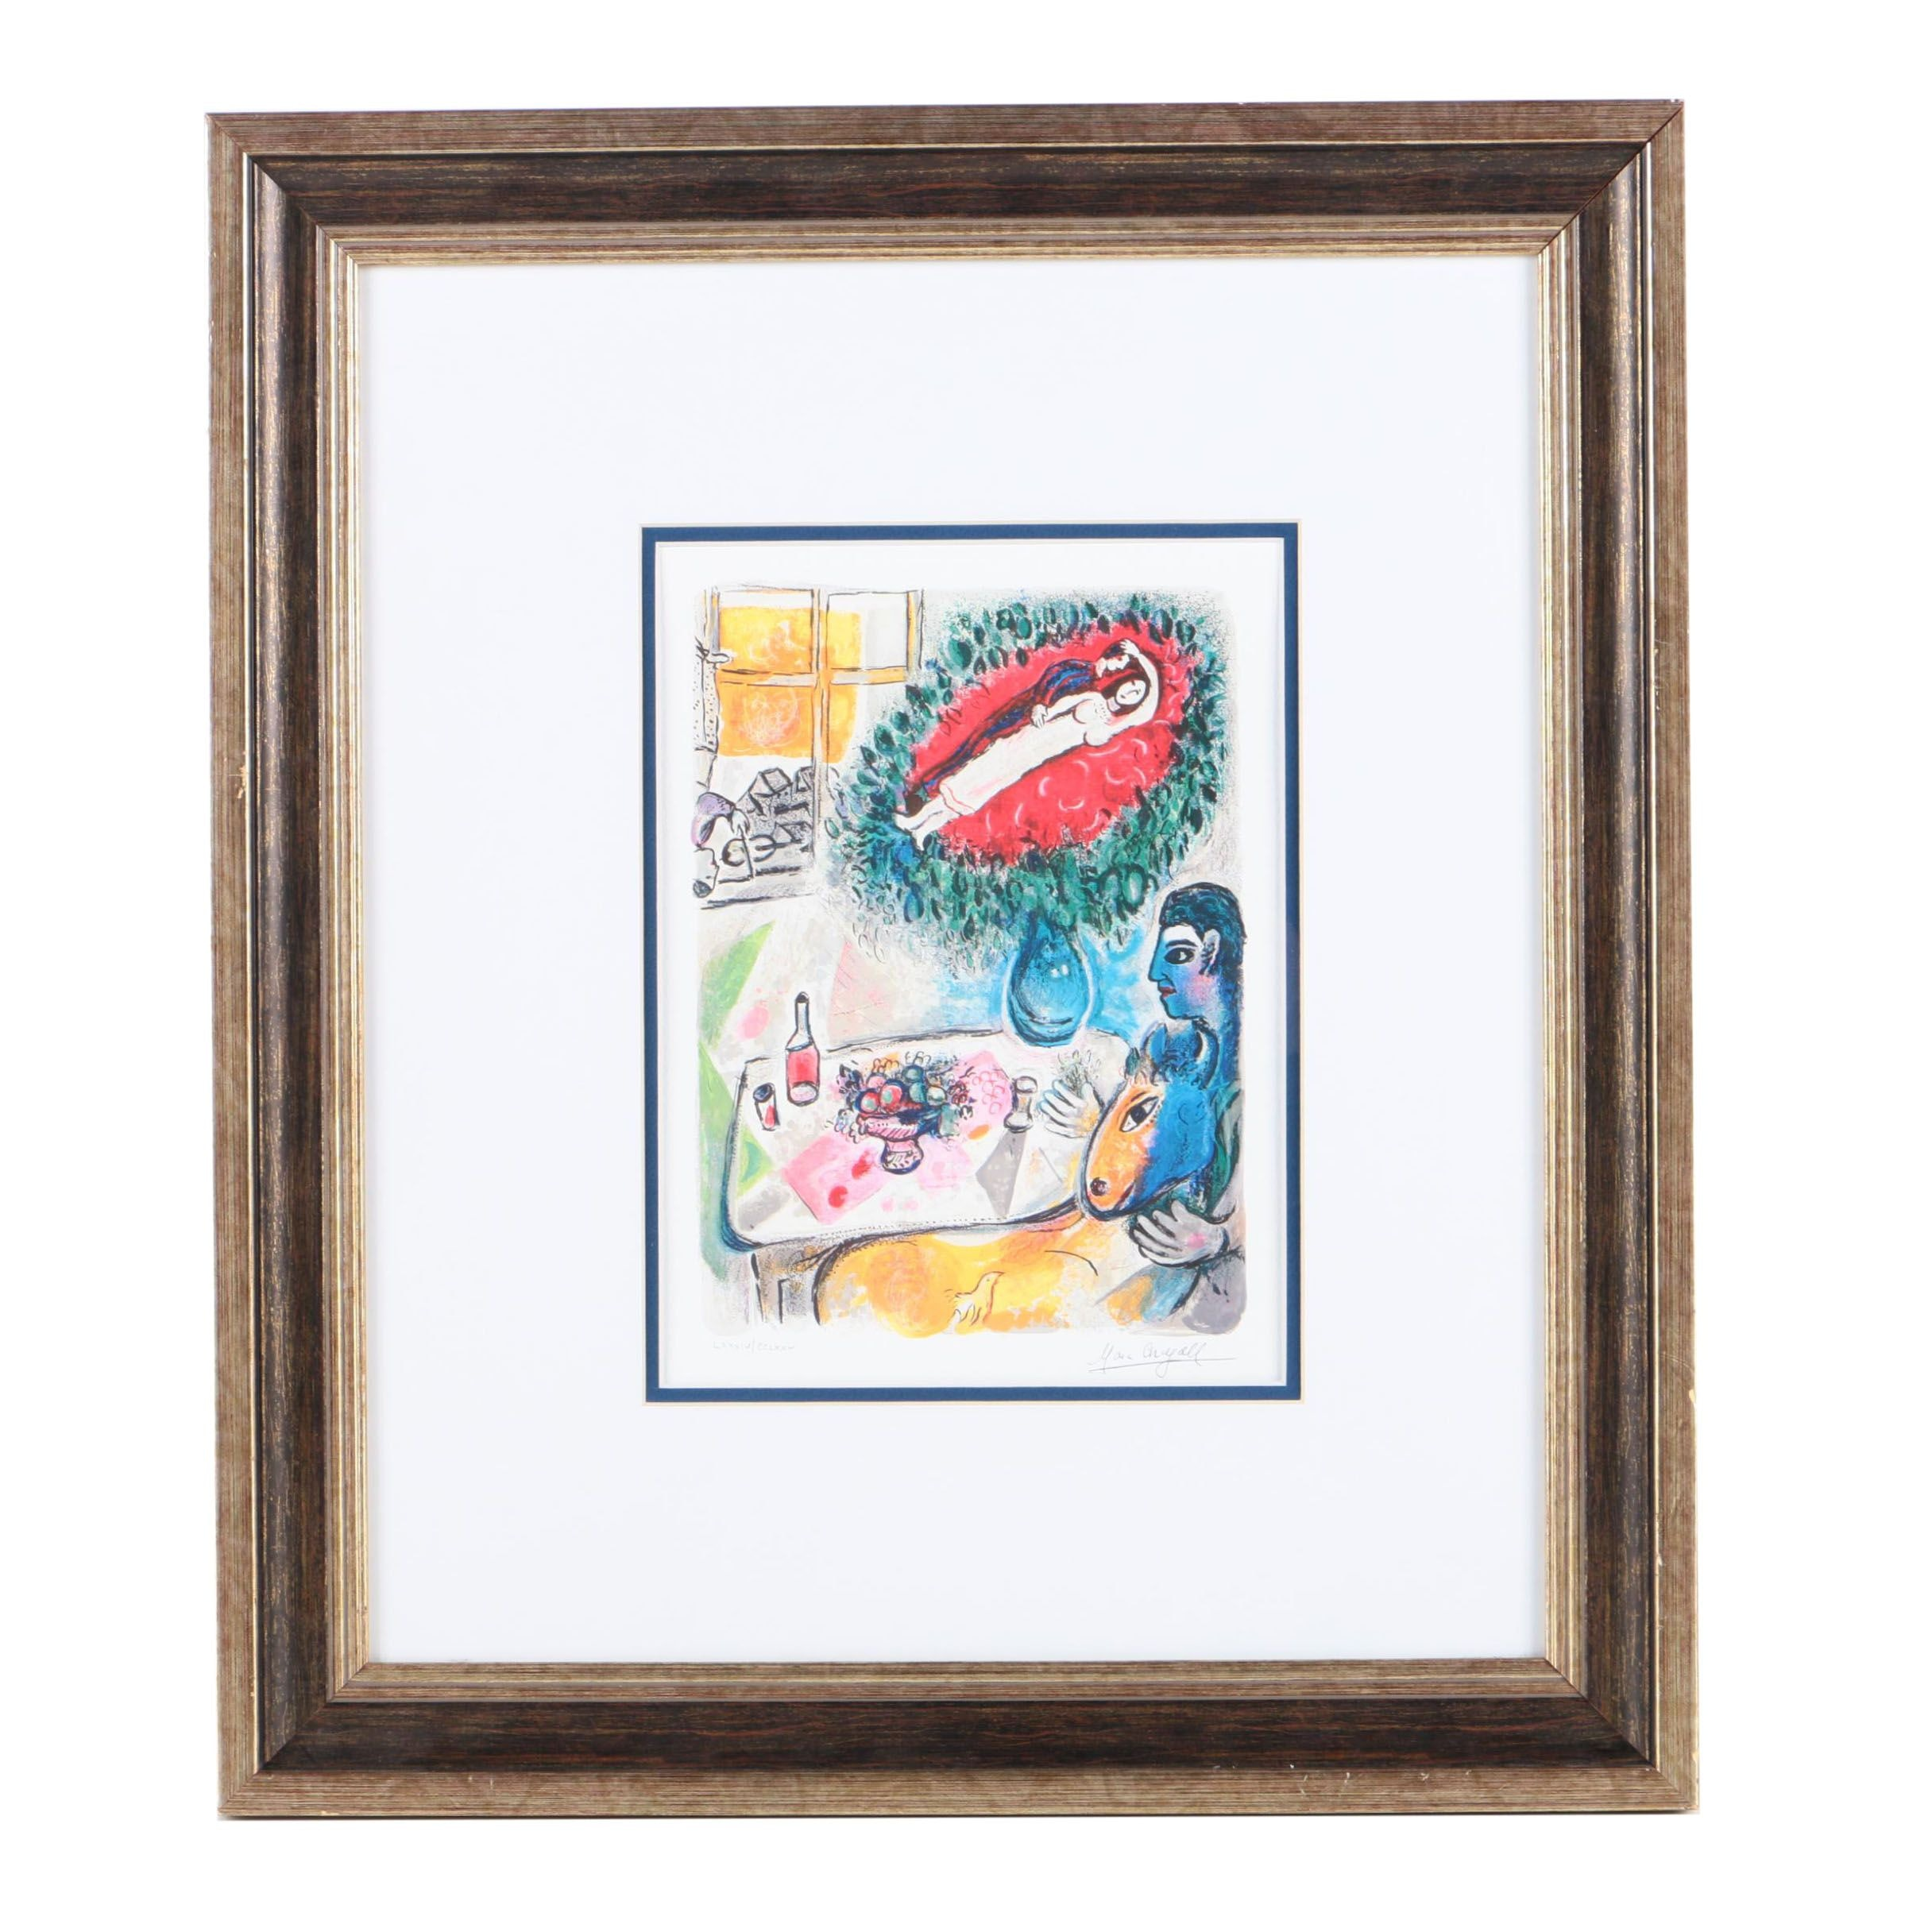 Limited Edition Giclee Print on Laid Paper After Marc Chagall